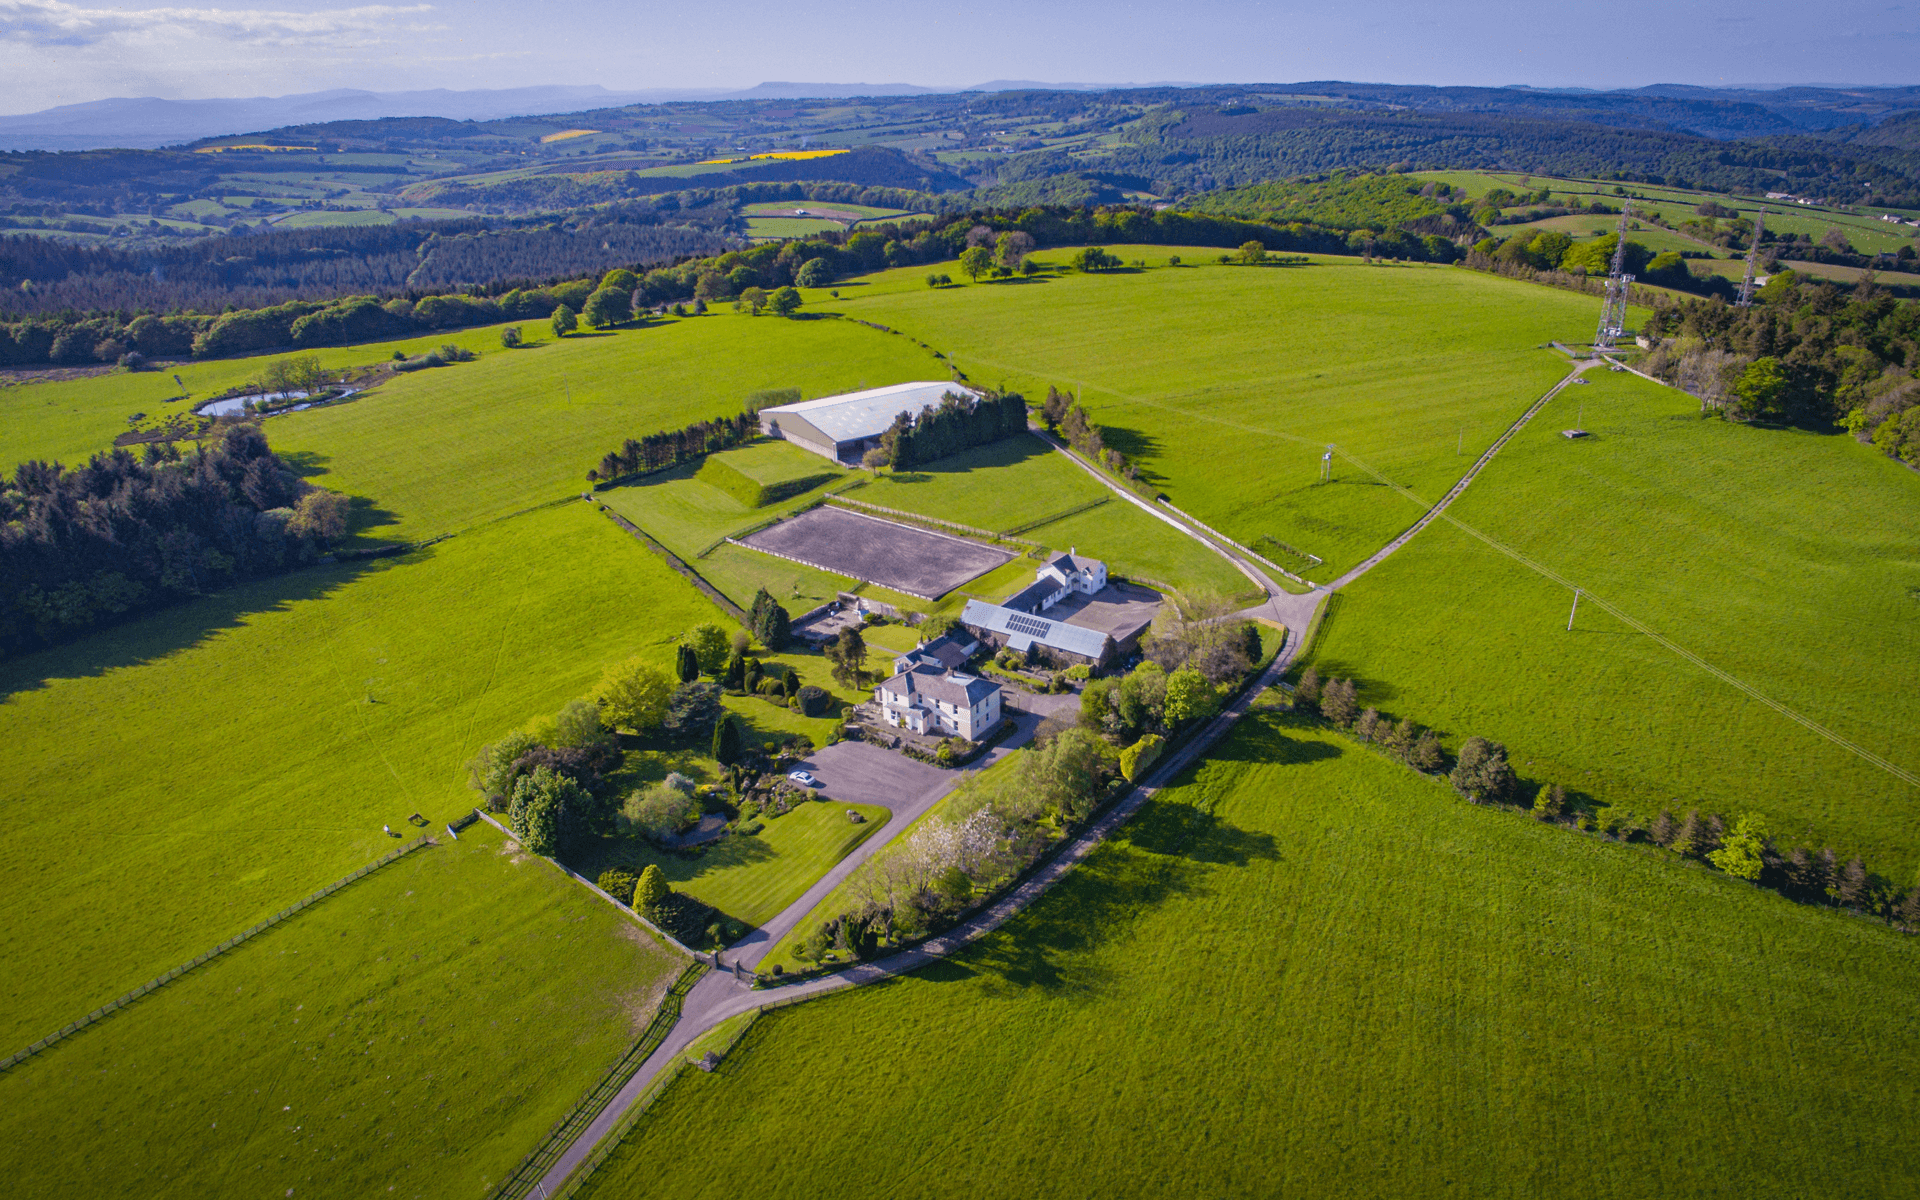 """DJI Inspire 1"" aerial drone photo of Gaer Hill Farm in Chepstow, Wales"